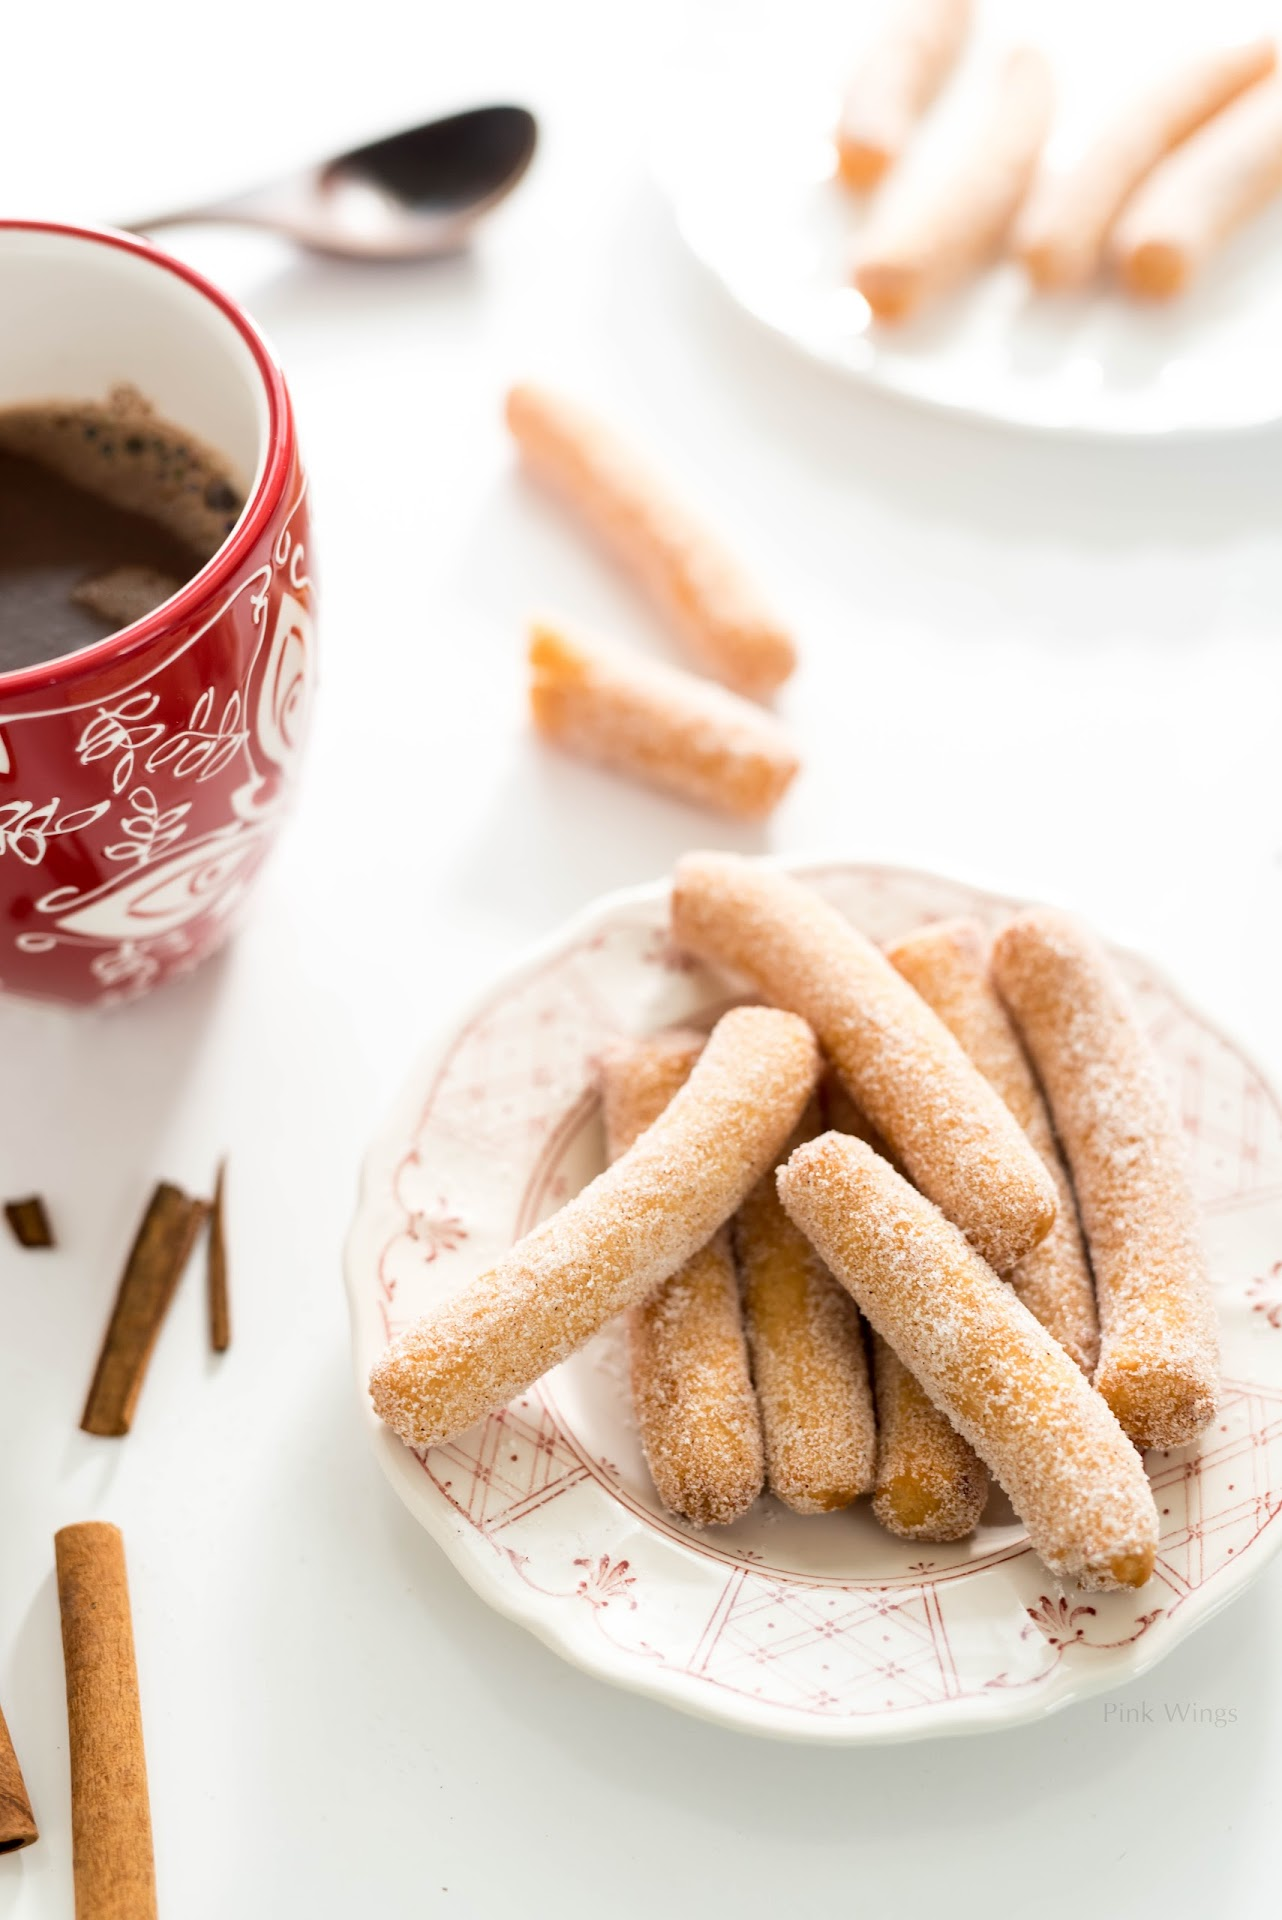 churros con chocolate recipe, european hot chocolate, dairy free recipes, a2 milk review, dairy for people with pd3, easy quick churros, hot chocolate bar ideas